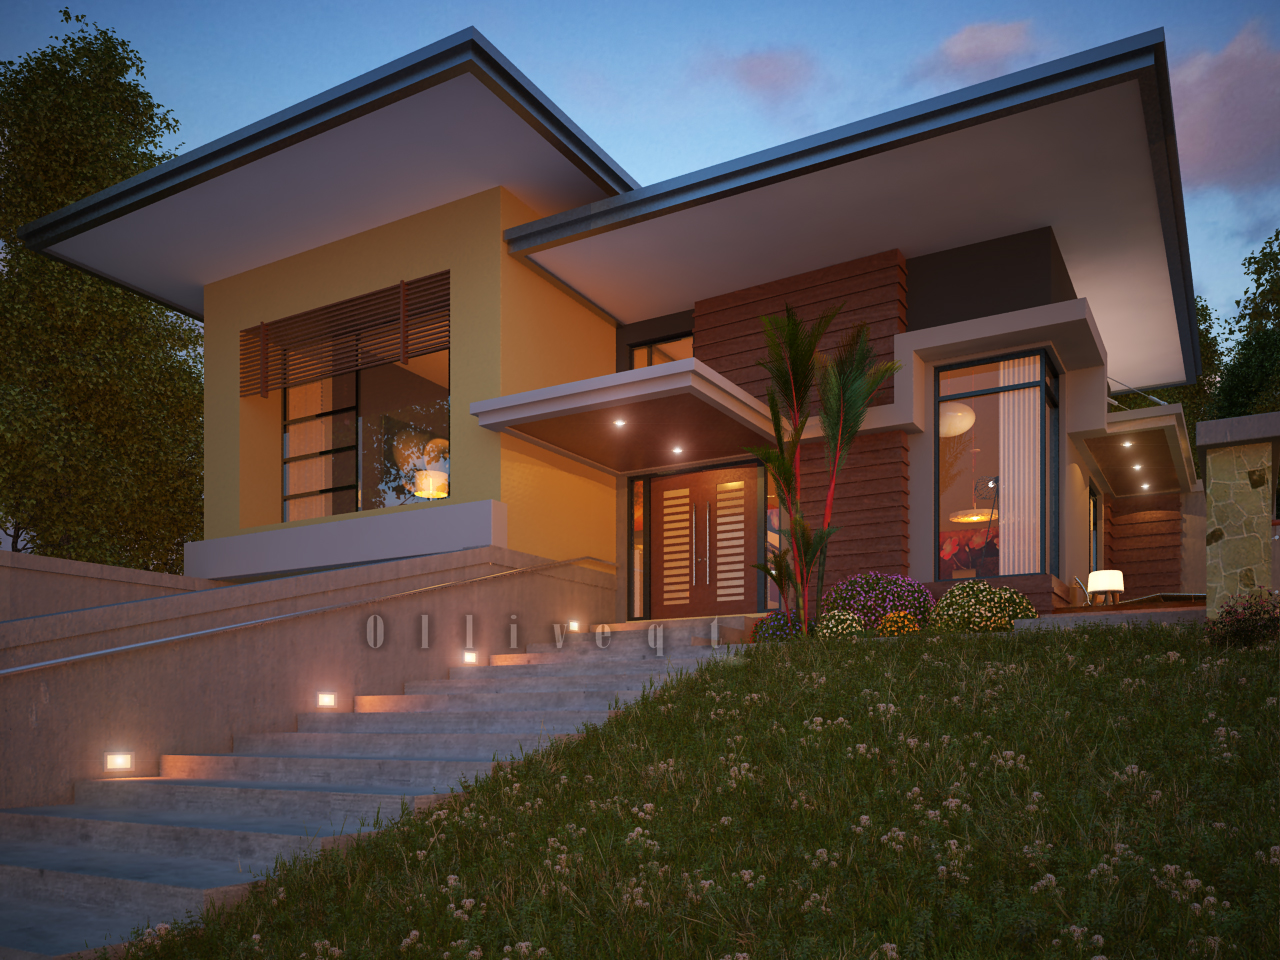 House design worth 2 million philippines - Thoughtskoto